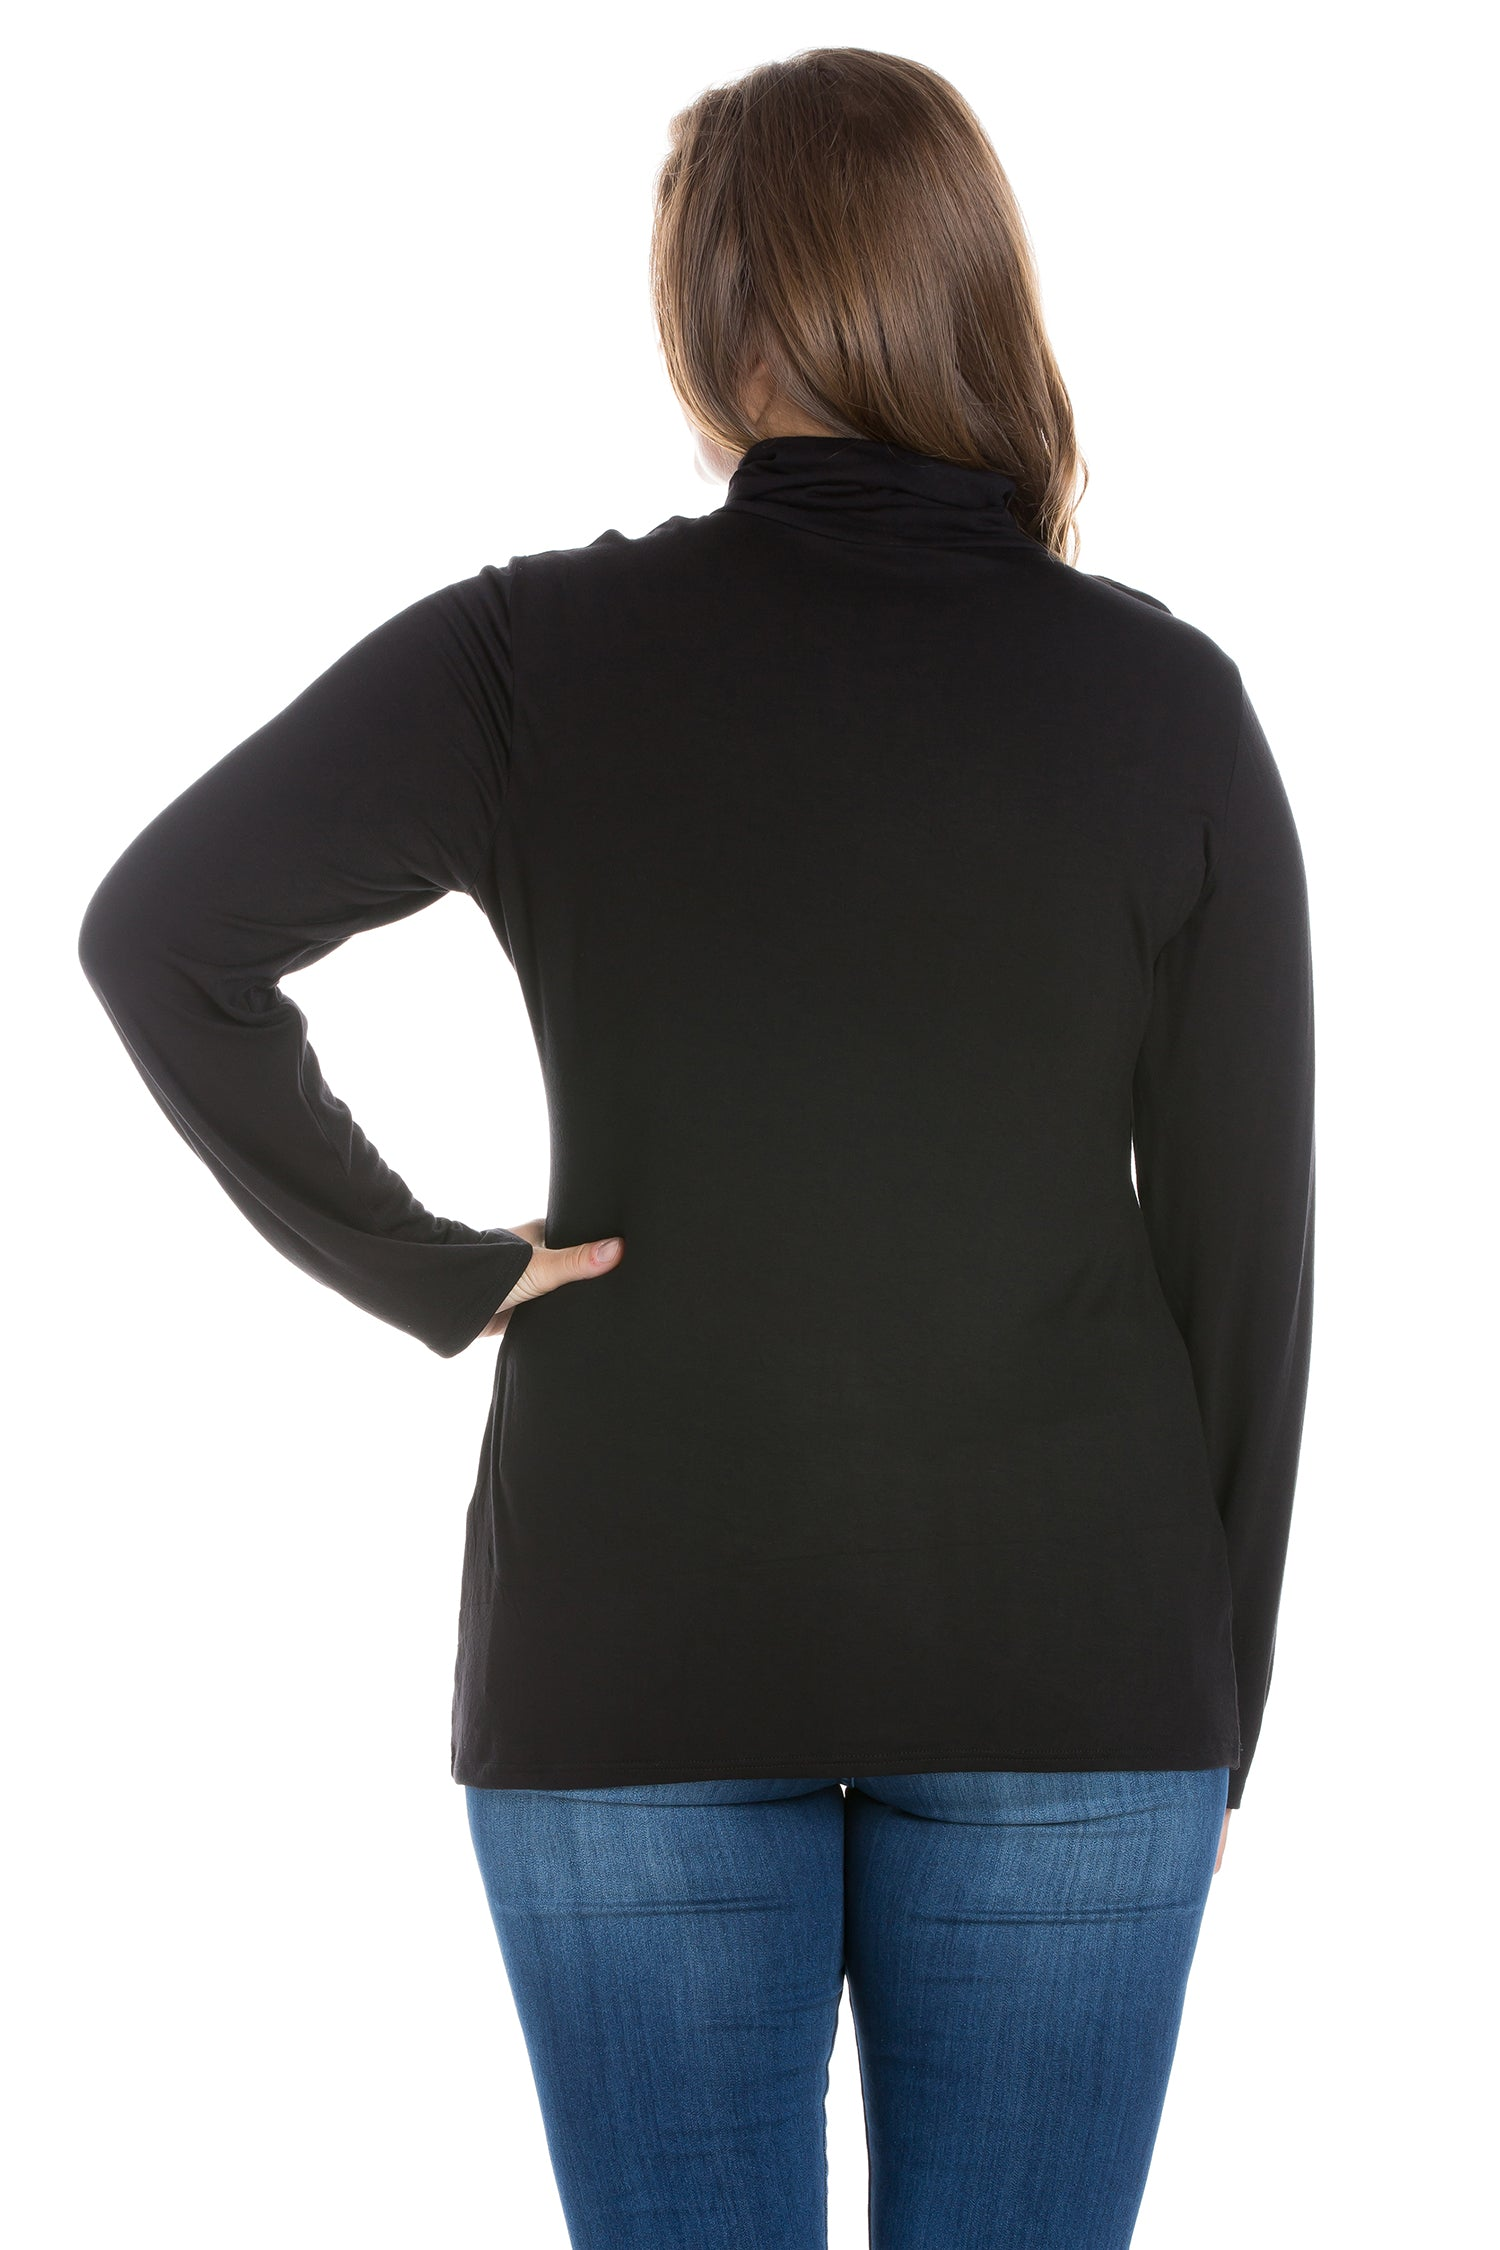 24seven Comfort Apparel Classic Womens Plus Size Long Sleeve Turtleneck